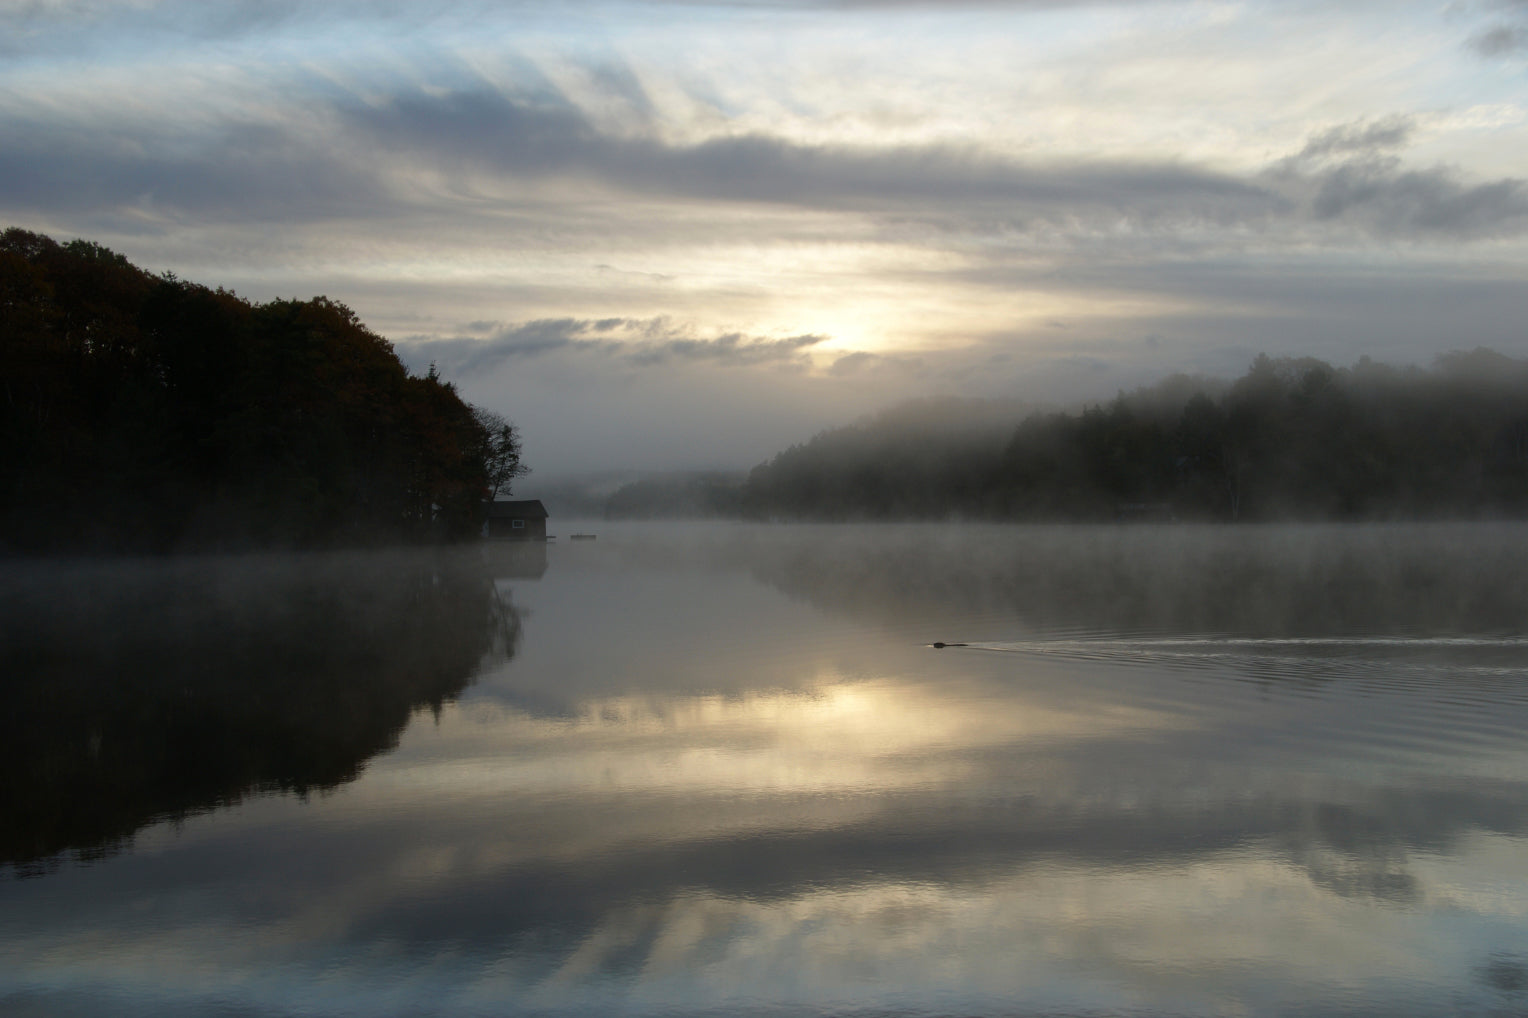 BEAVER IN MORNING,  a Photograph by Ronnie Lebow